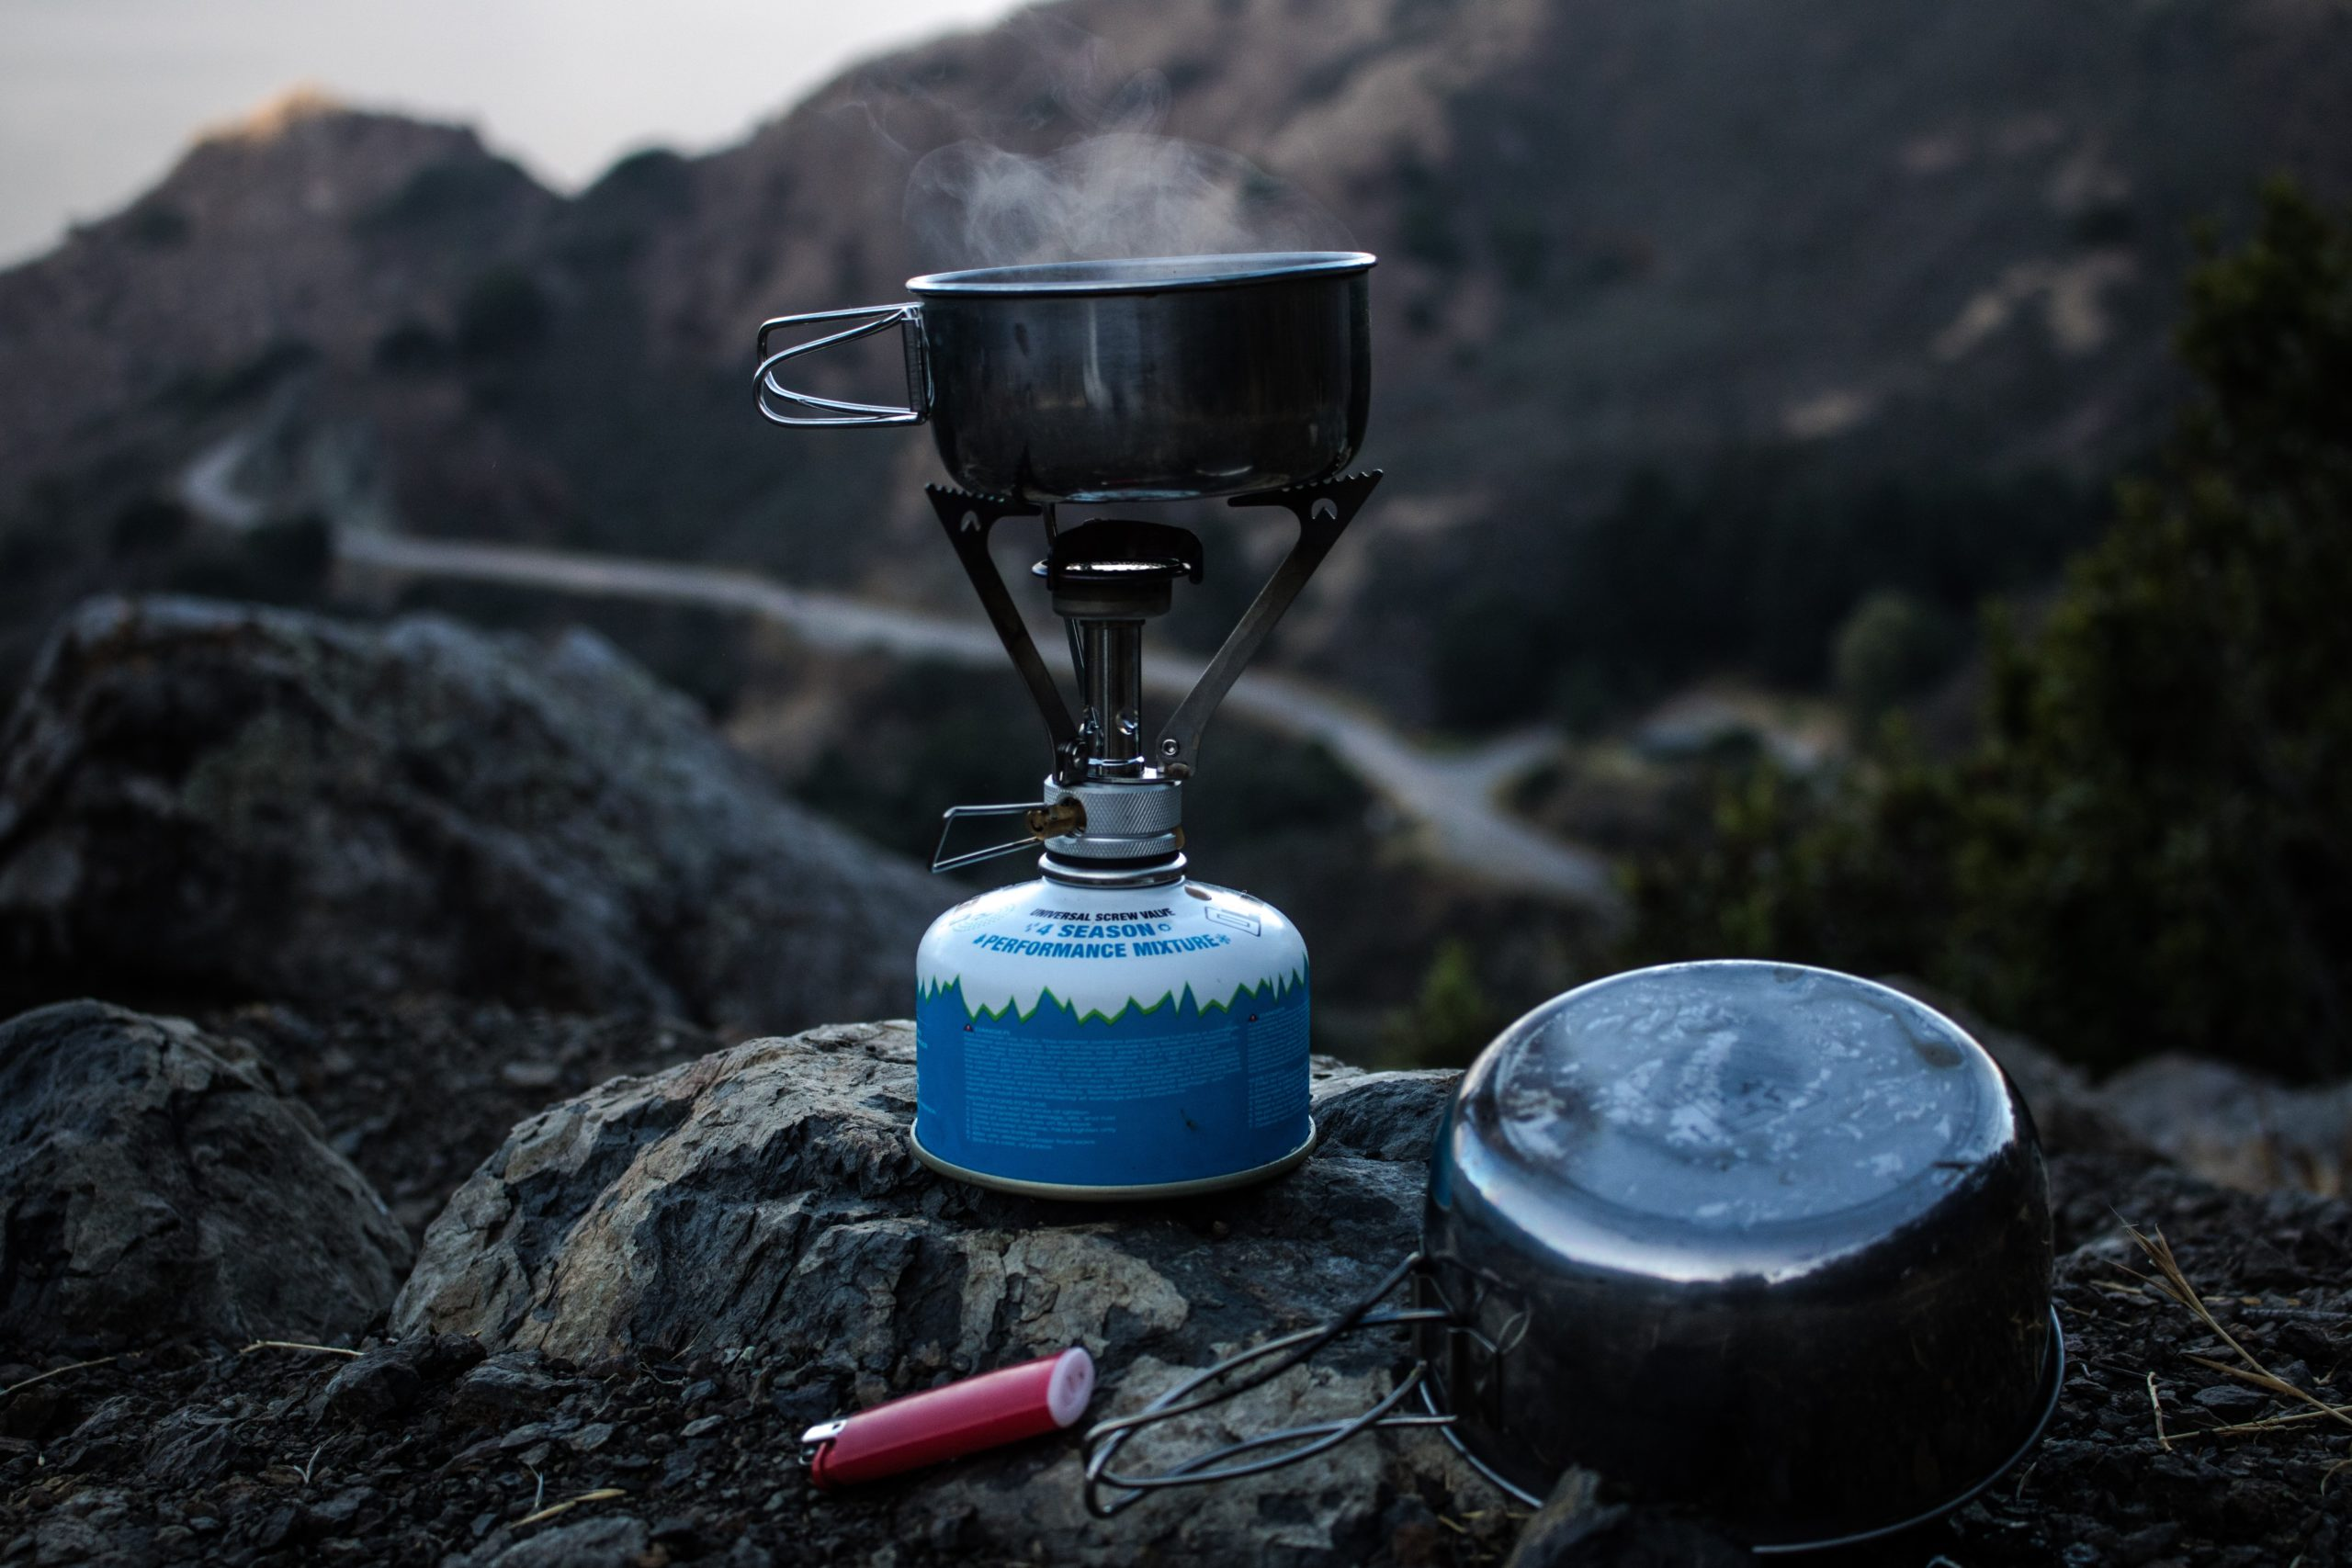 Blue camping stove on the rock in the mountains